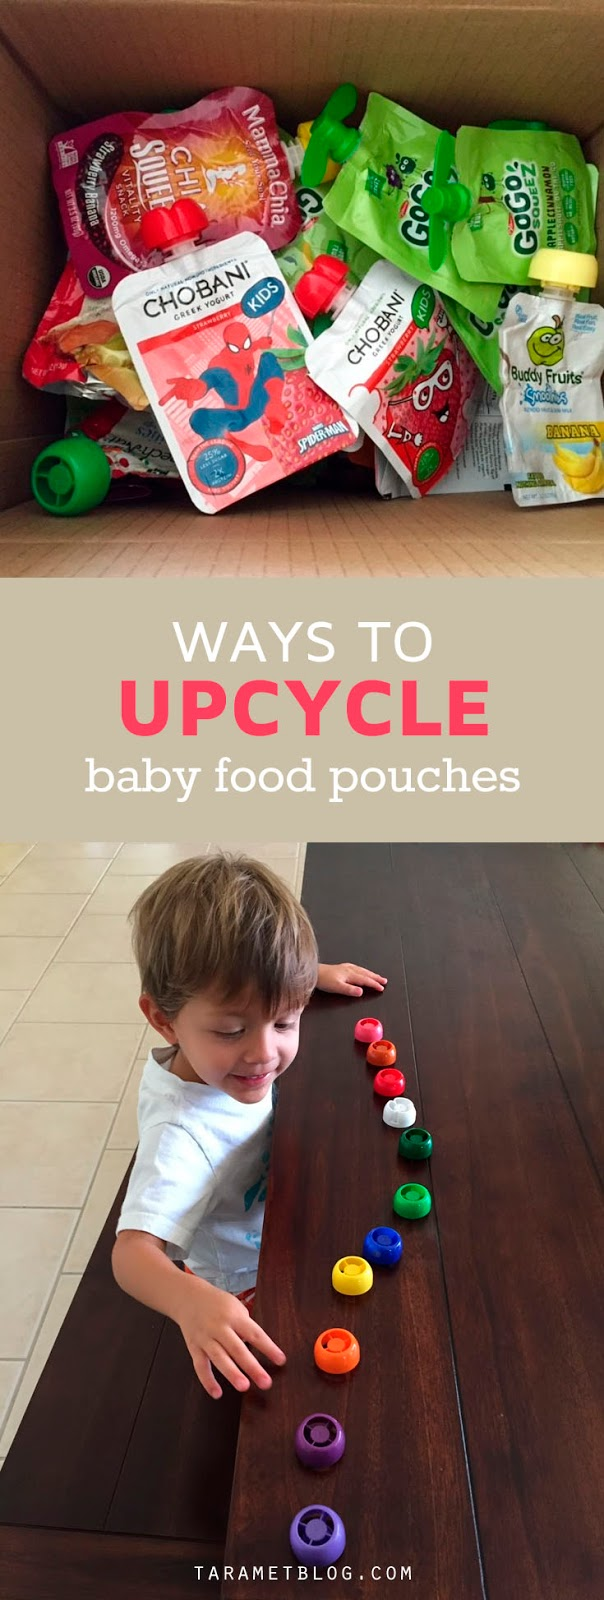 5 Amazing Ways to Re-use Baby Food pouches & caps